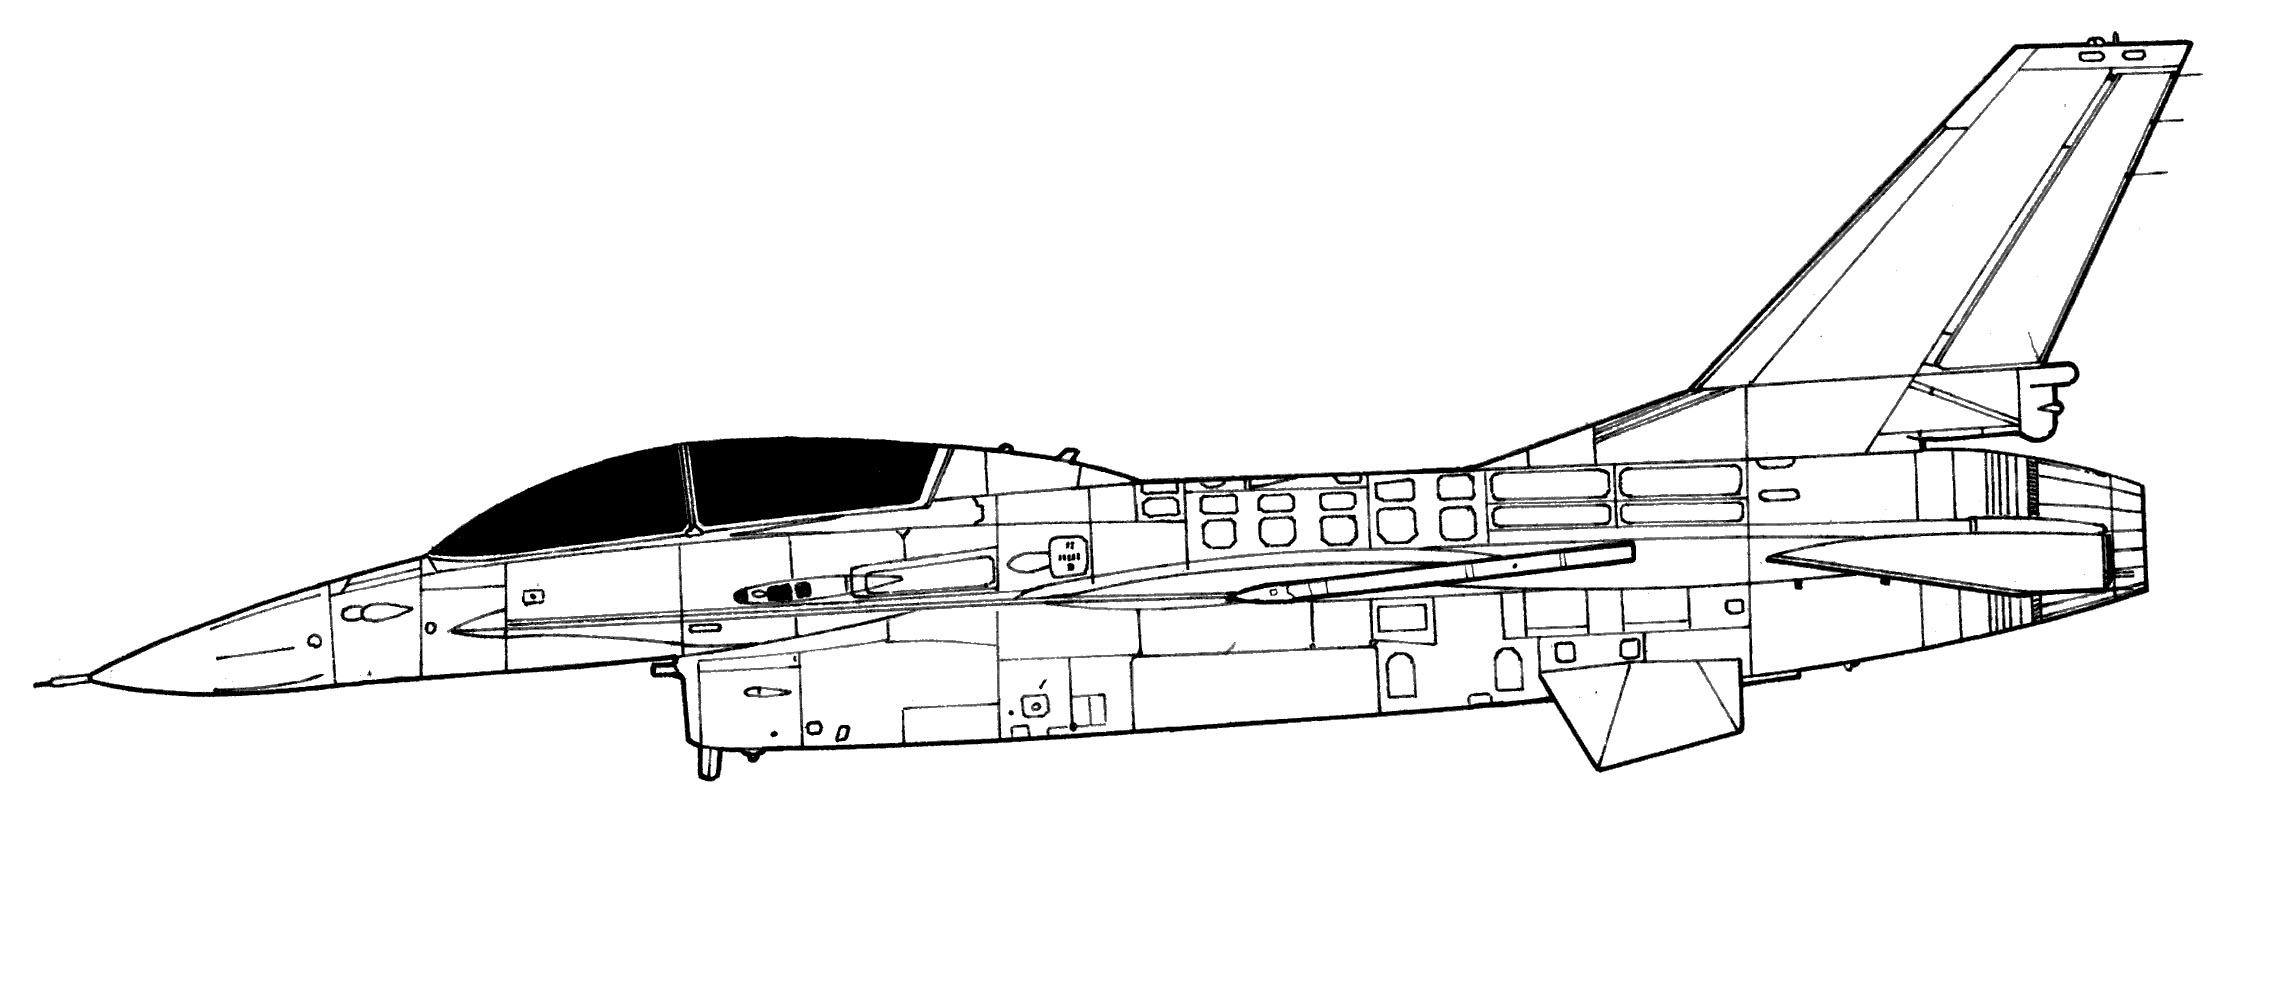 F 16 Fighting Falcon Blueprint